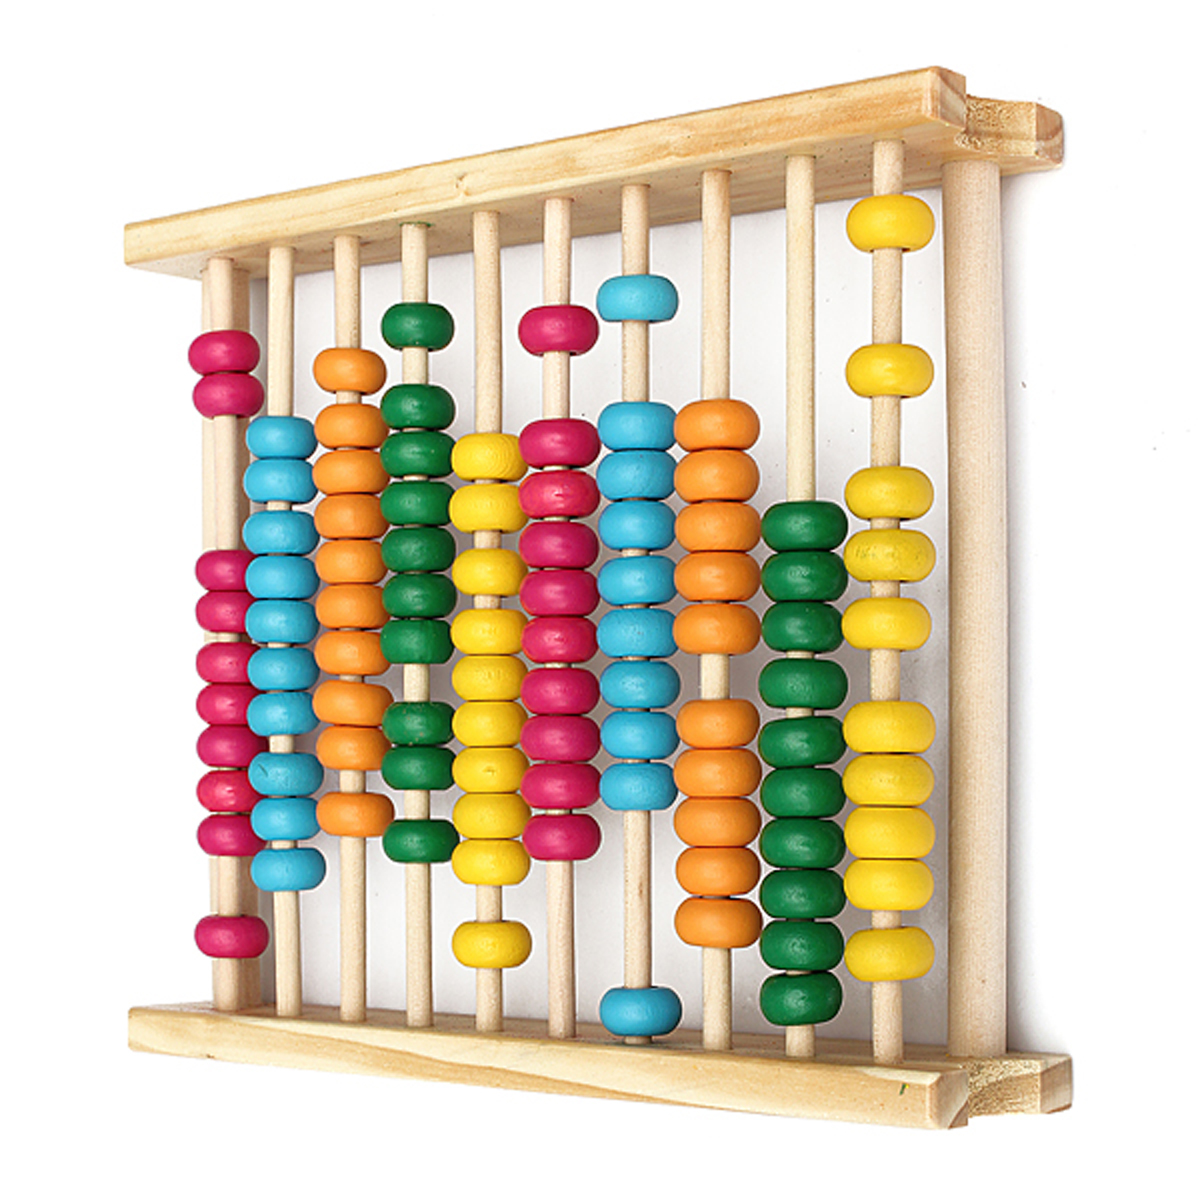 Wooden Abacus-Classic and Colorful Children's Math and Counting Toy with Free-Standing Frame and 100 Beads-Learning and Educational Toy